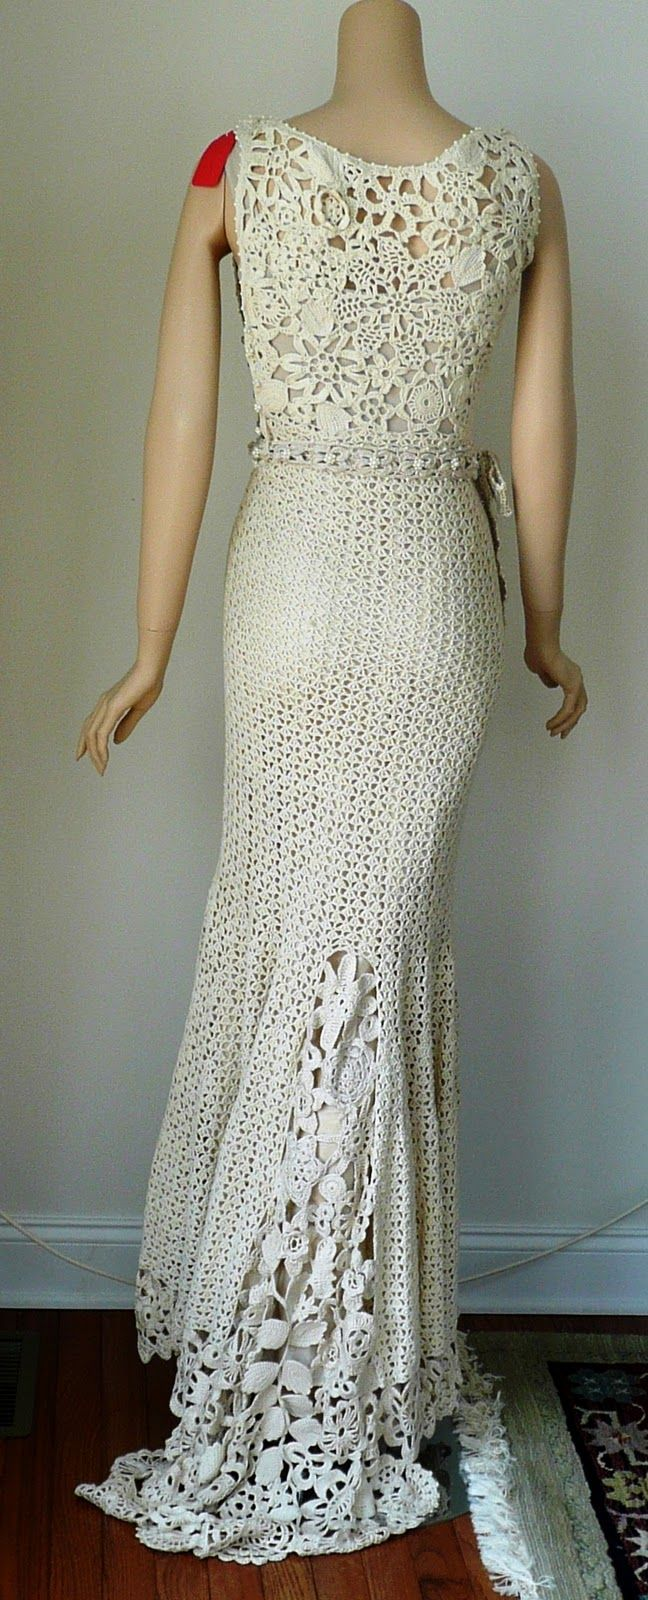 8 best images about wedding dresses on pinterest crochet wedding crochet gown crochet wedding dress patterncrochet bankloansurffo Images